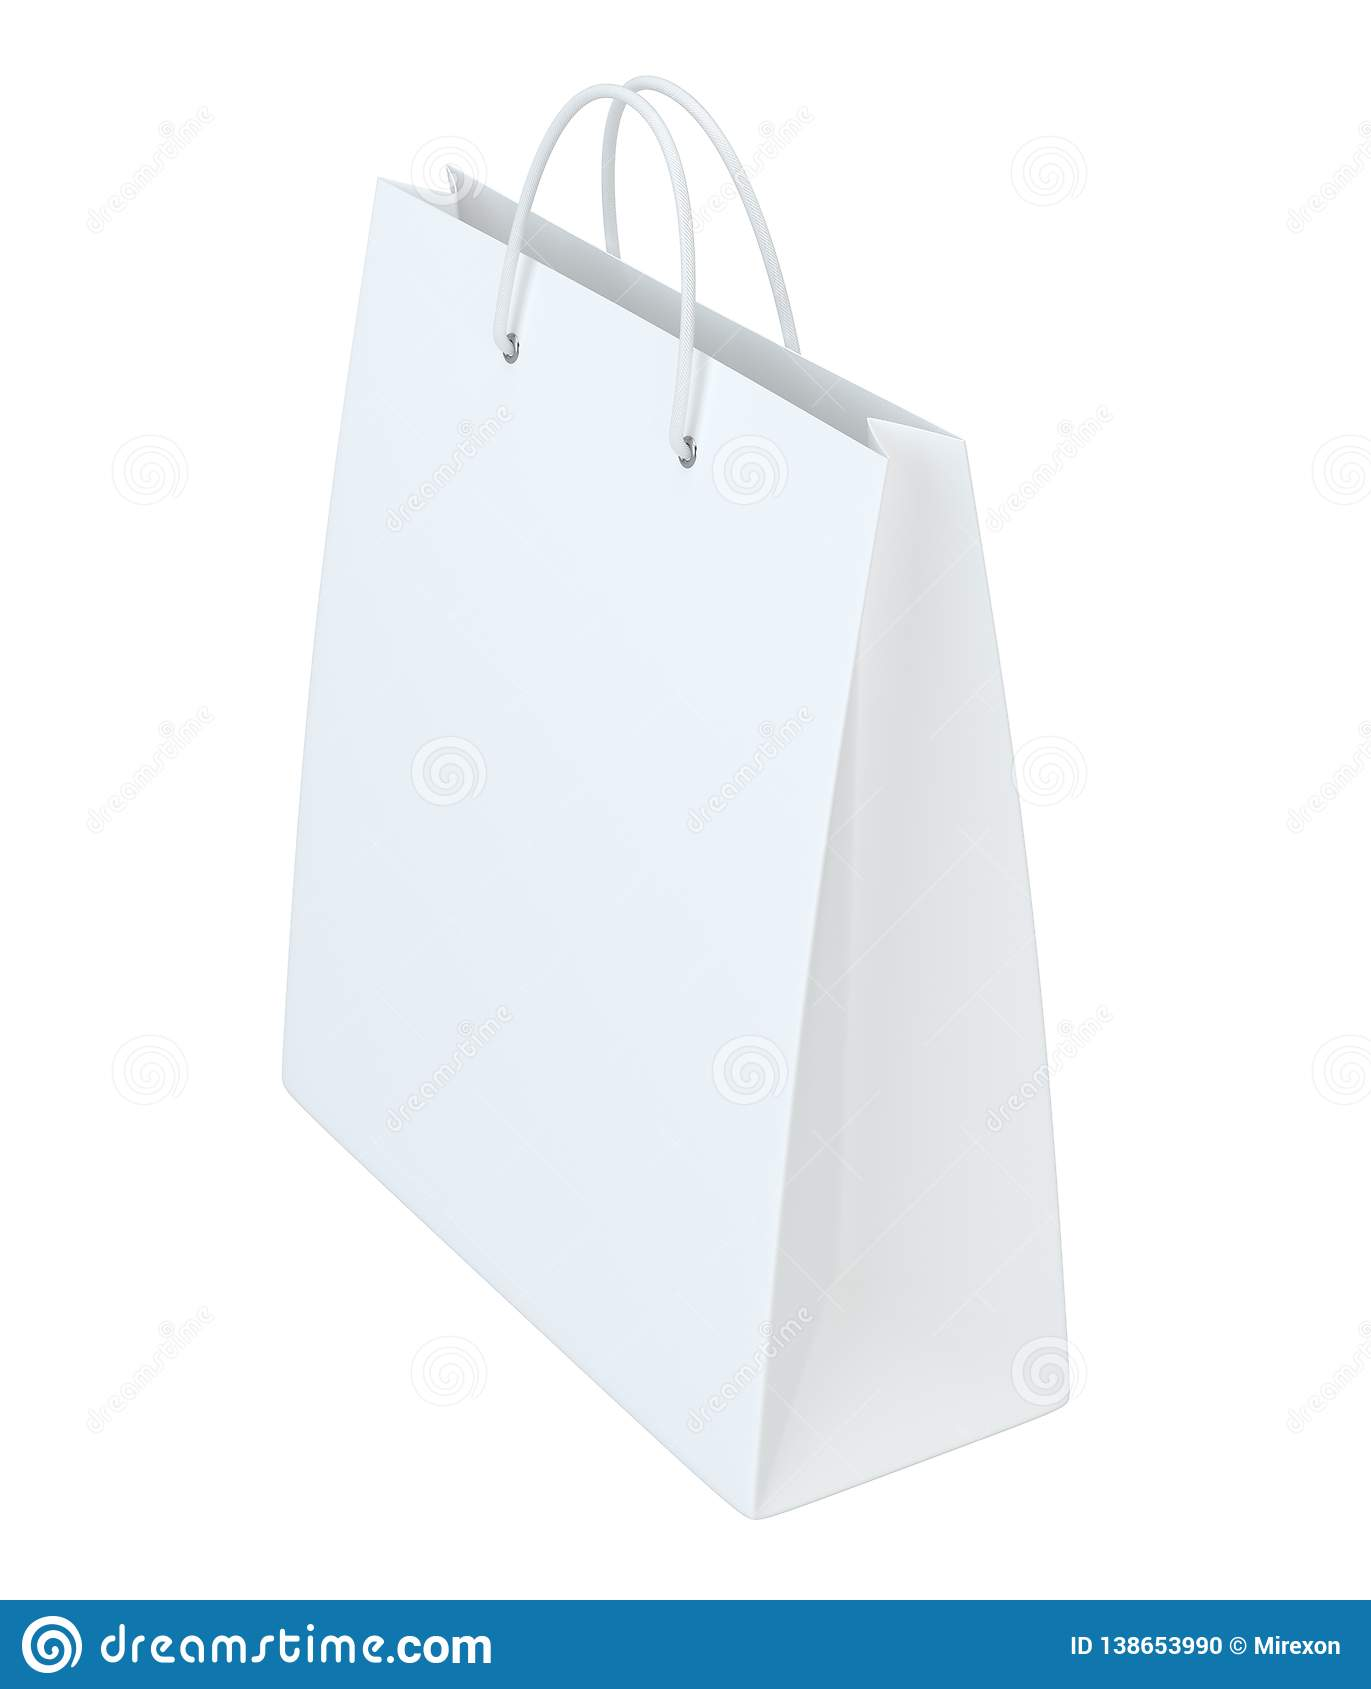 Close up of a white paper bag on white background with clipping path. Isolated on white background. 3d rendering